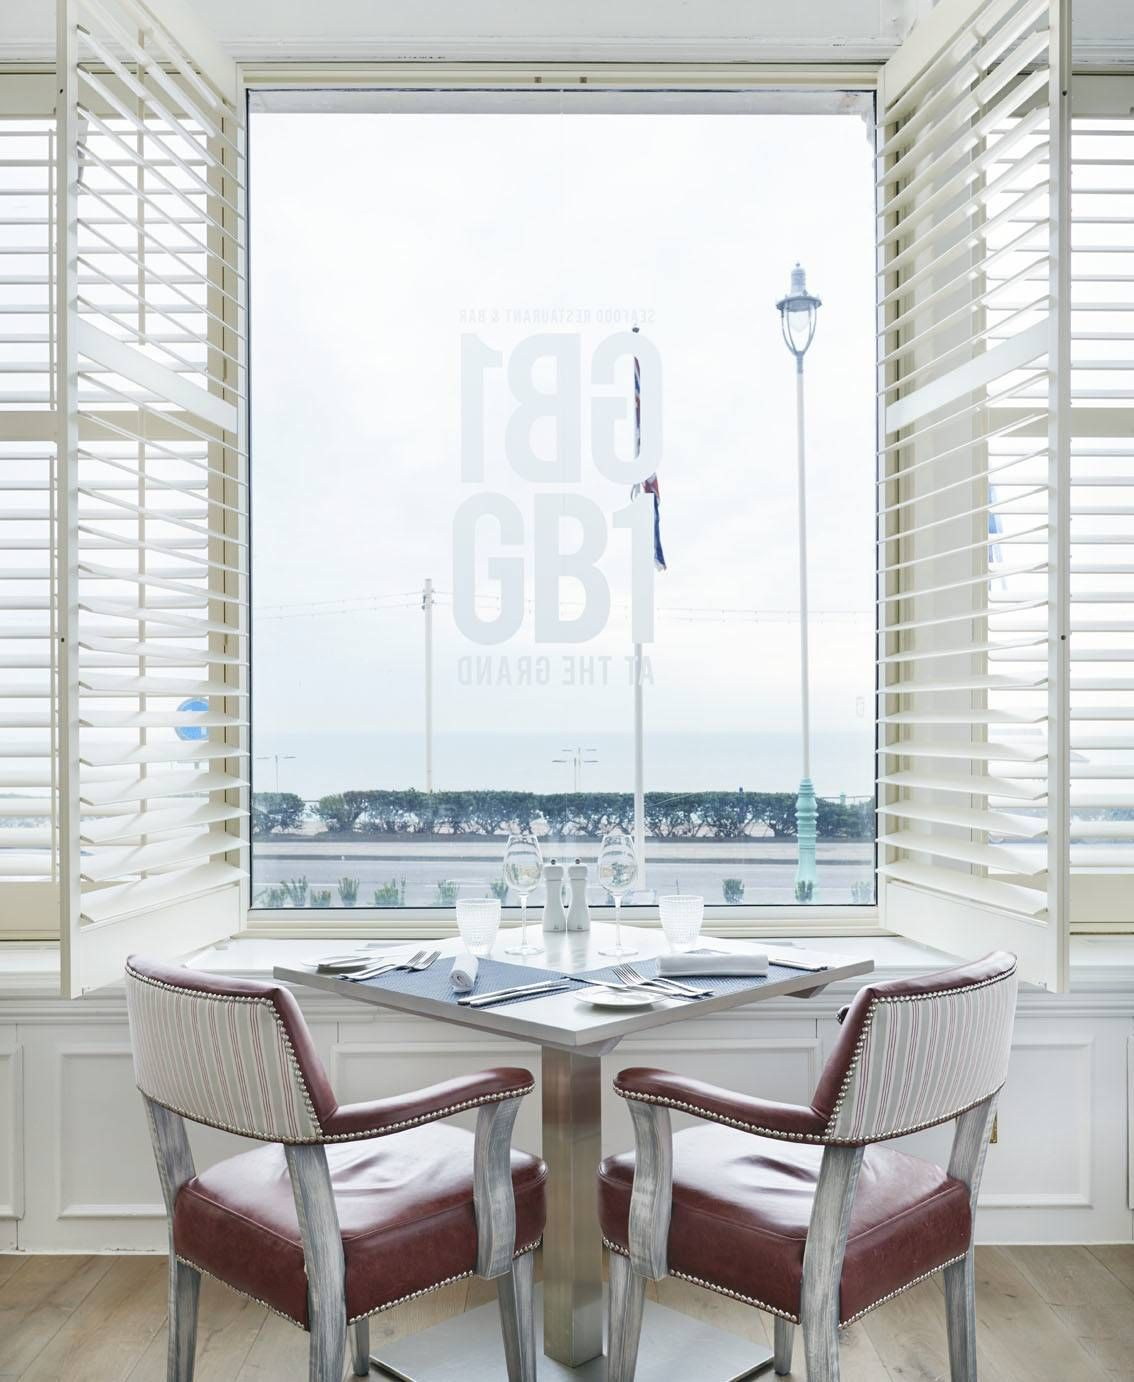 One of the most stunning views in Brighton, check this window seat out, GB1, Grand Hotel